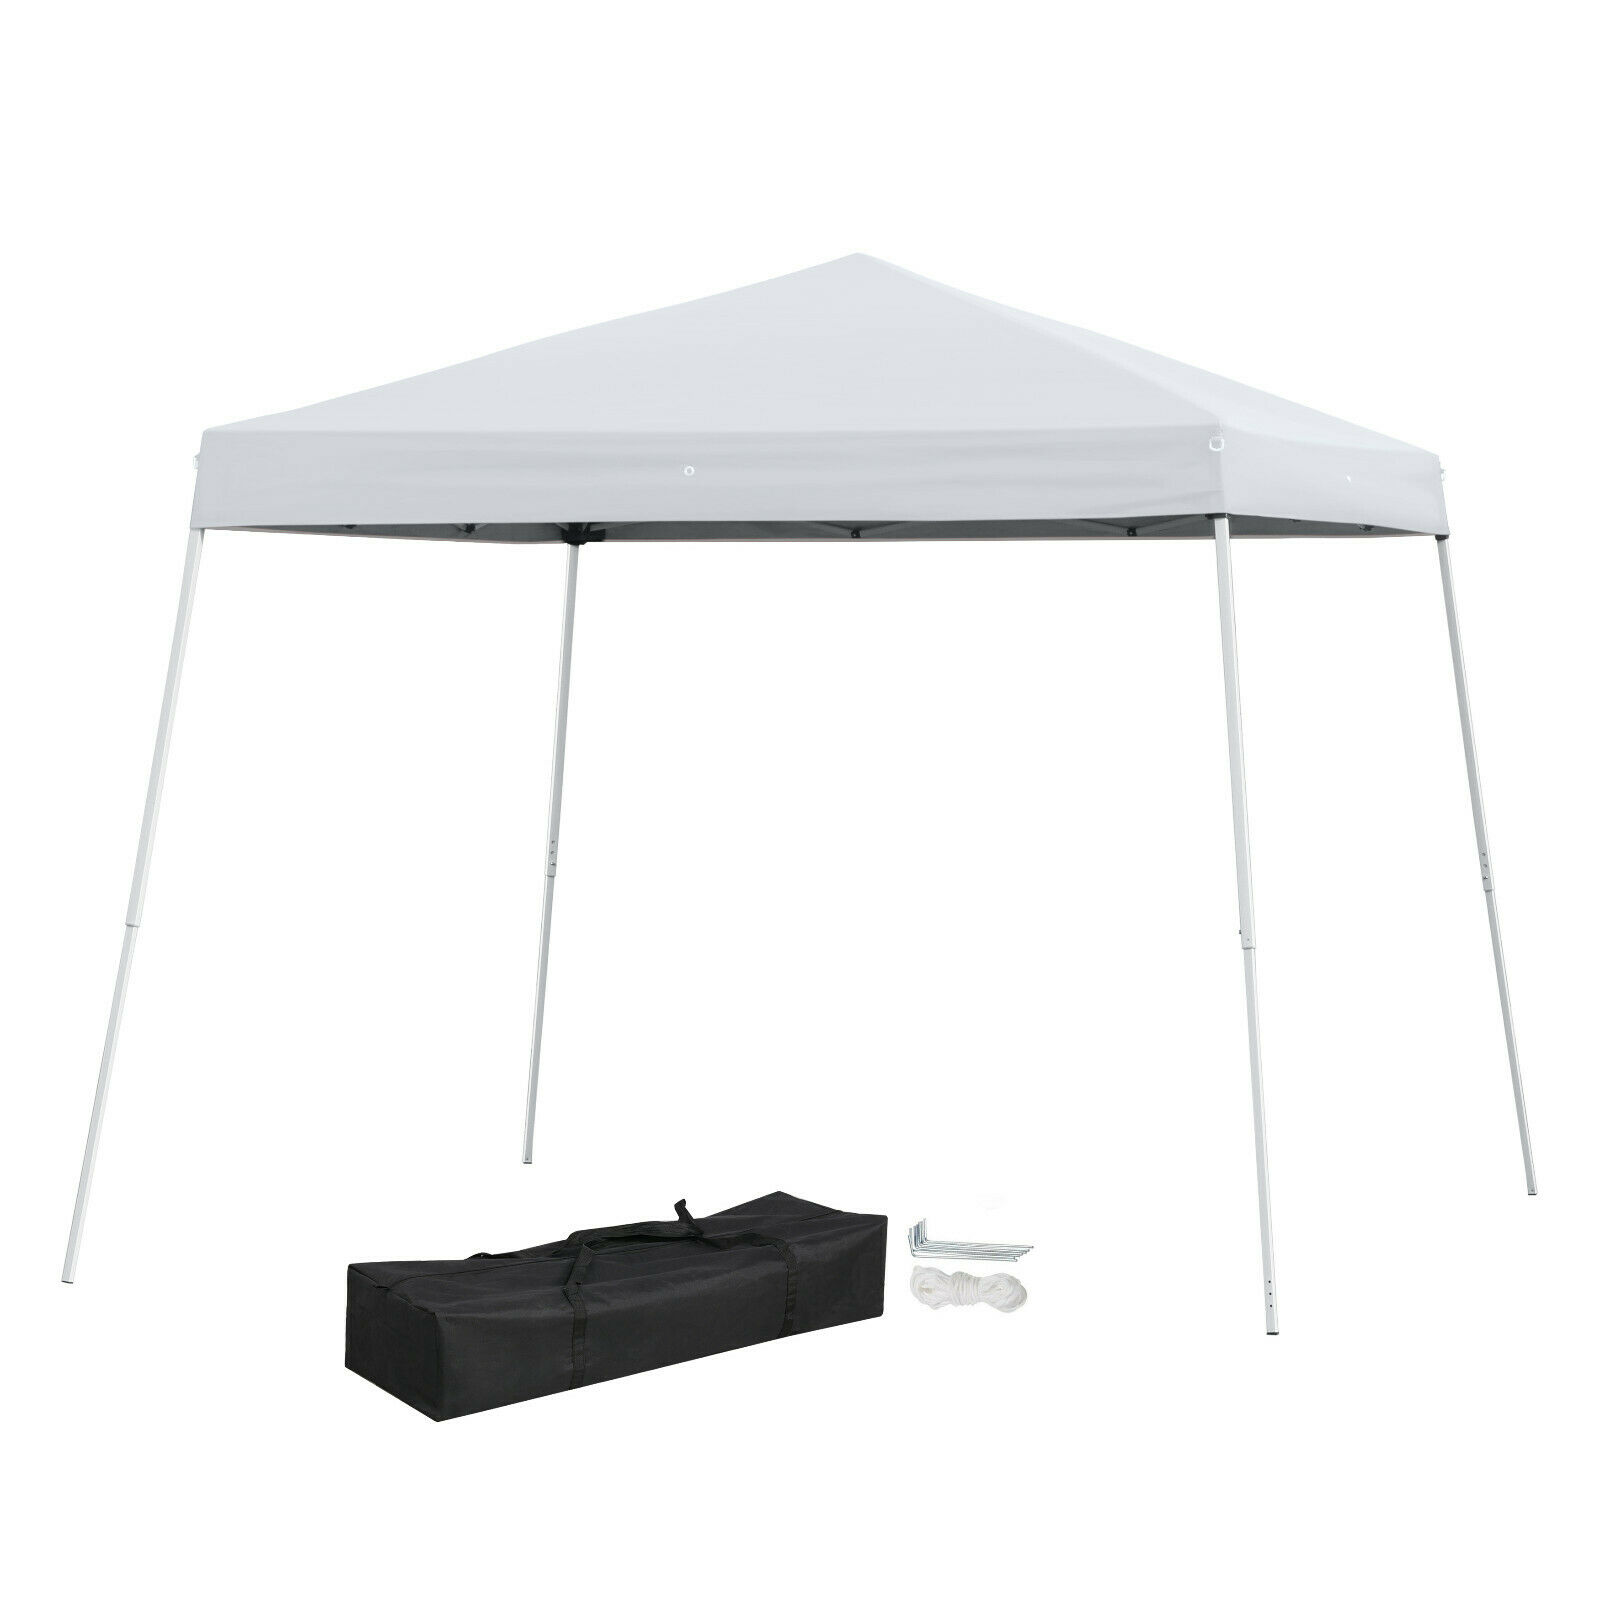 Details about 10X10' Pop Up Canopy Tent Outdoor Event Instant Shade Shelter  Commercial Gazebo